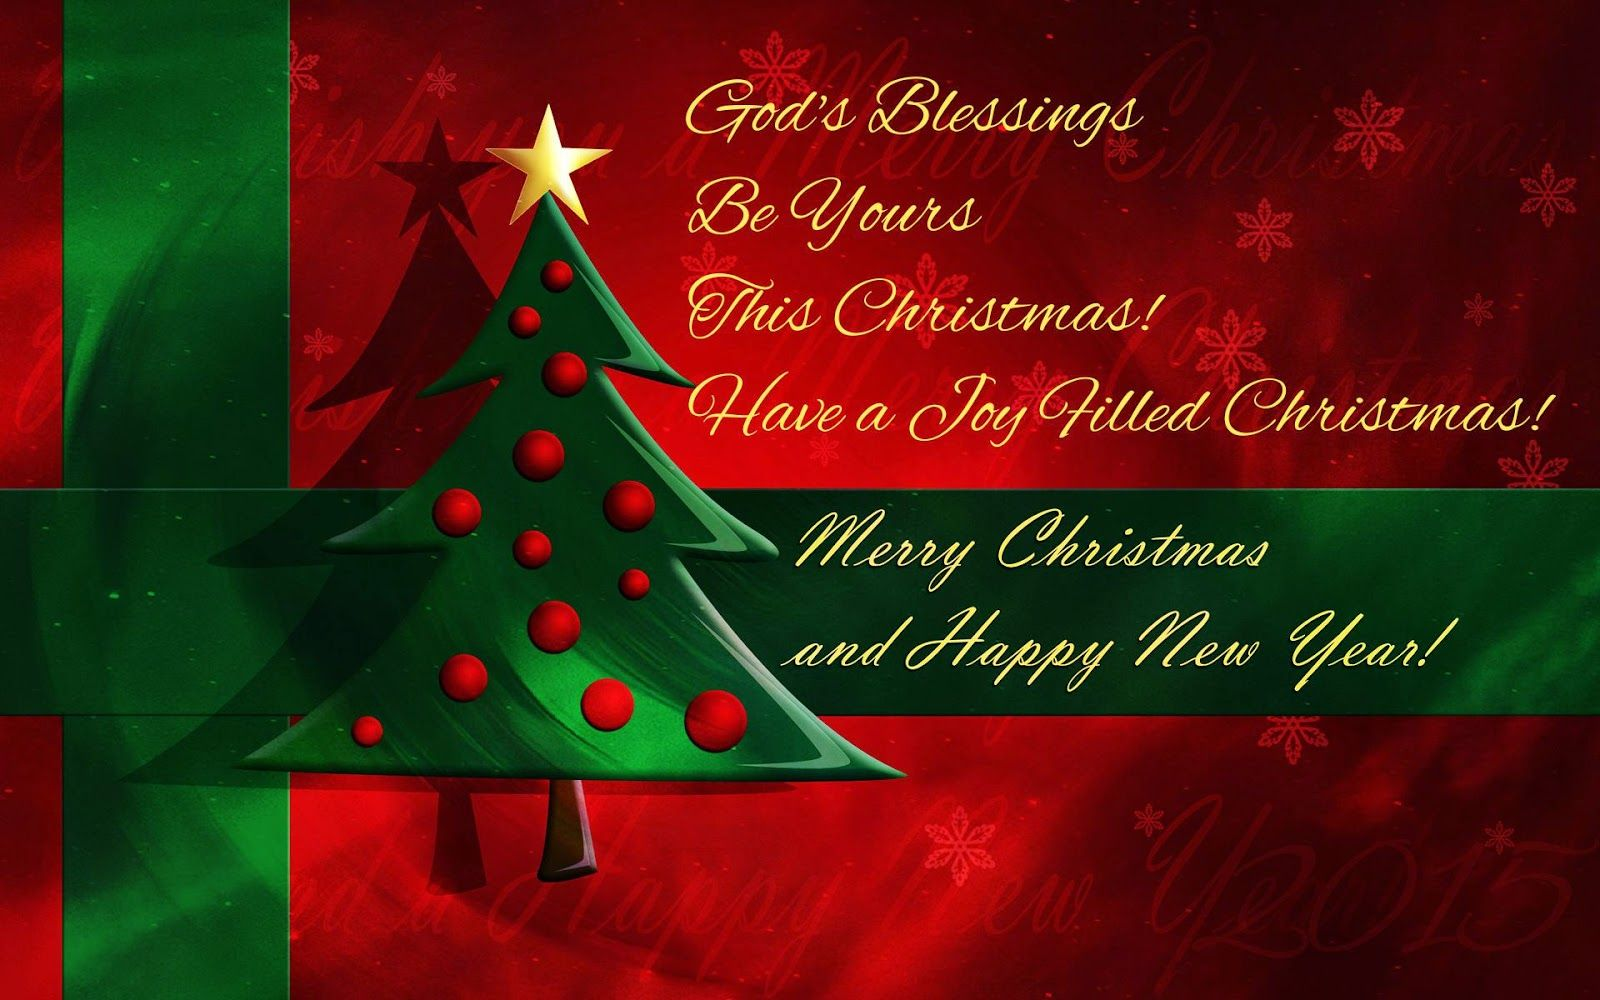 God Blessings Business Christmas Greetings Quotes Messages